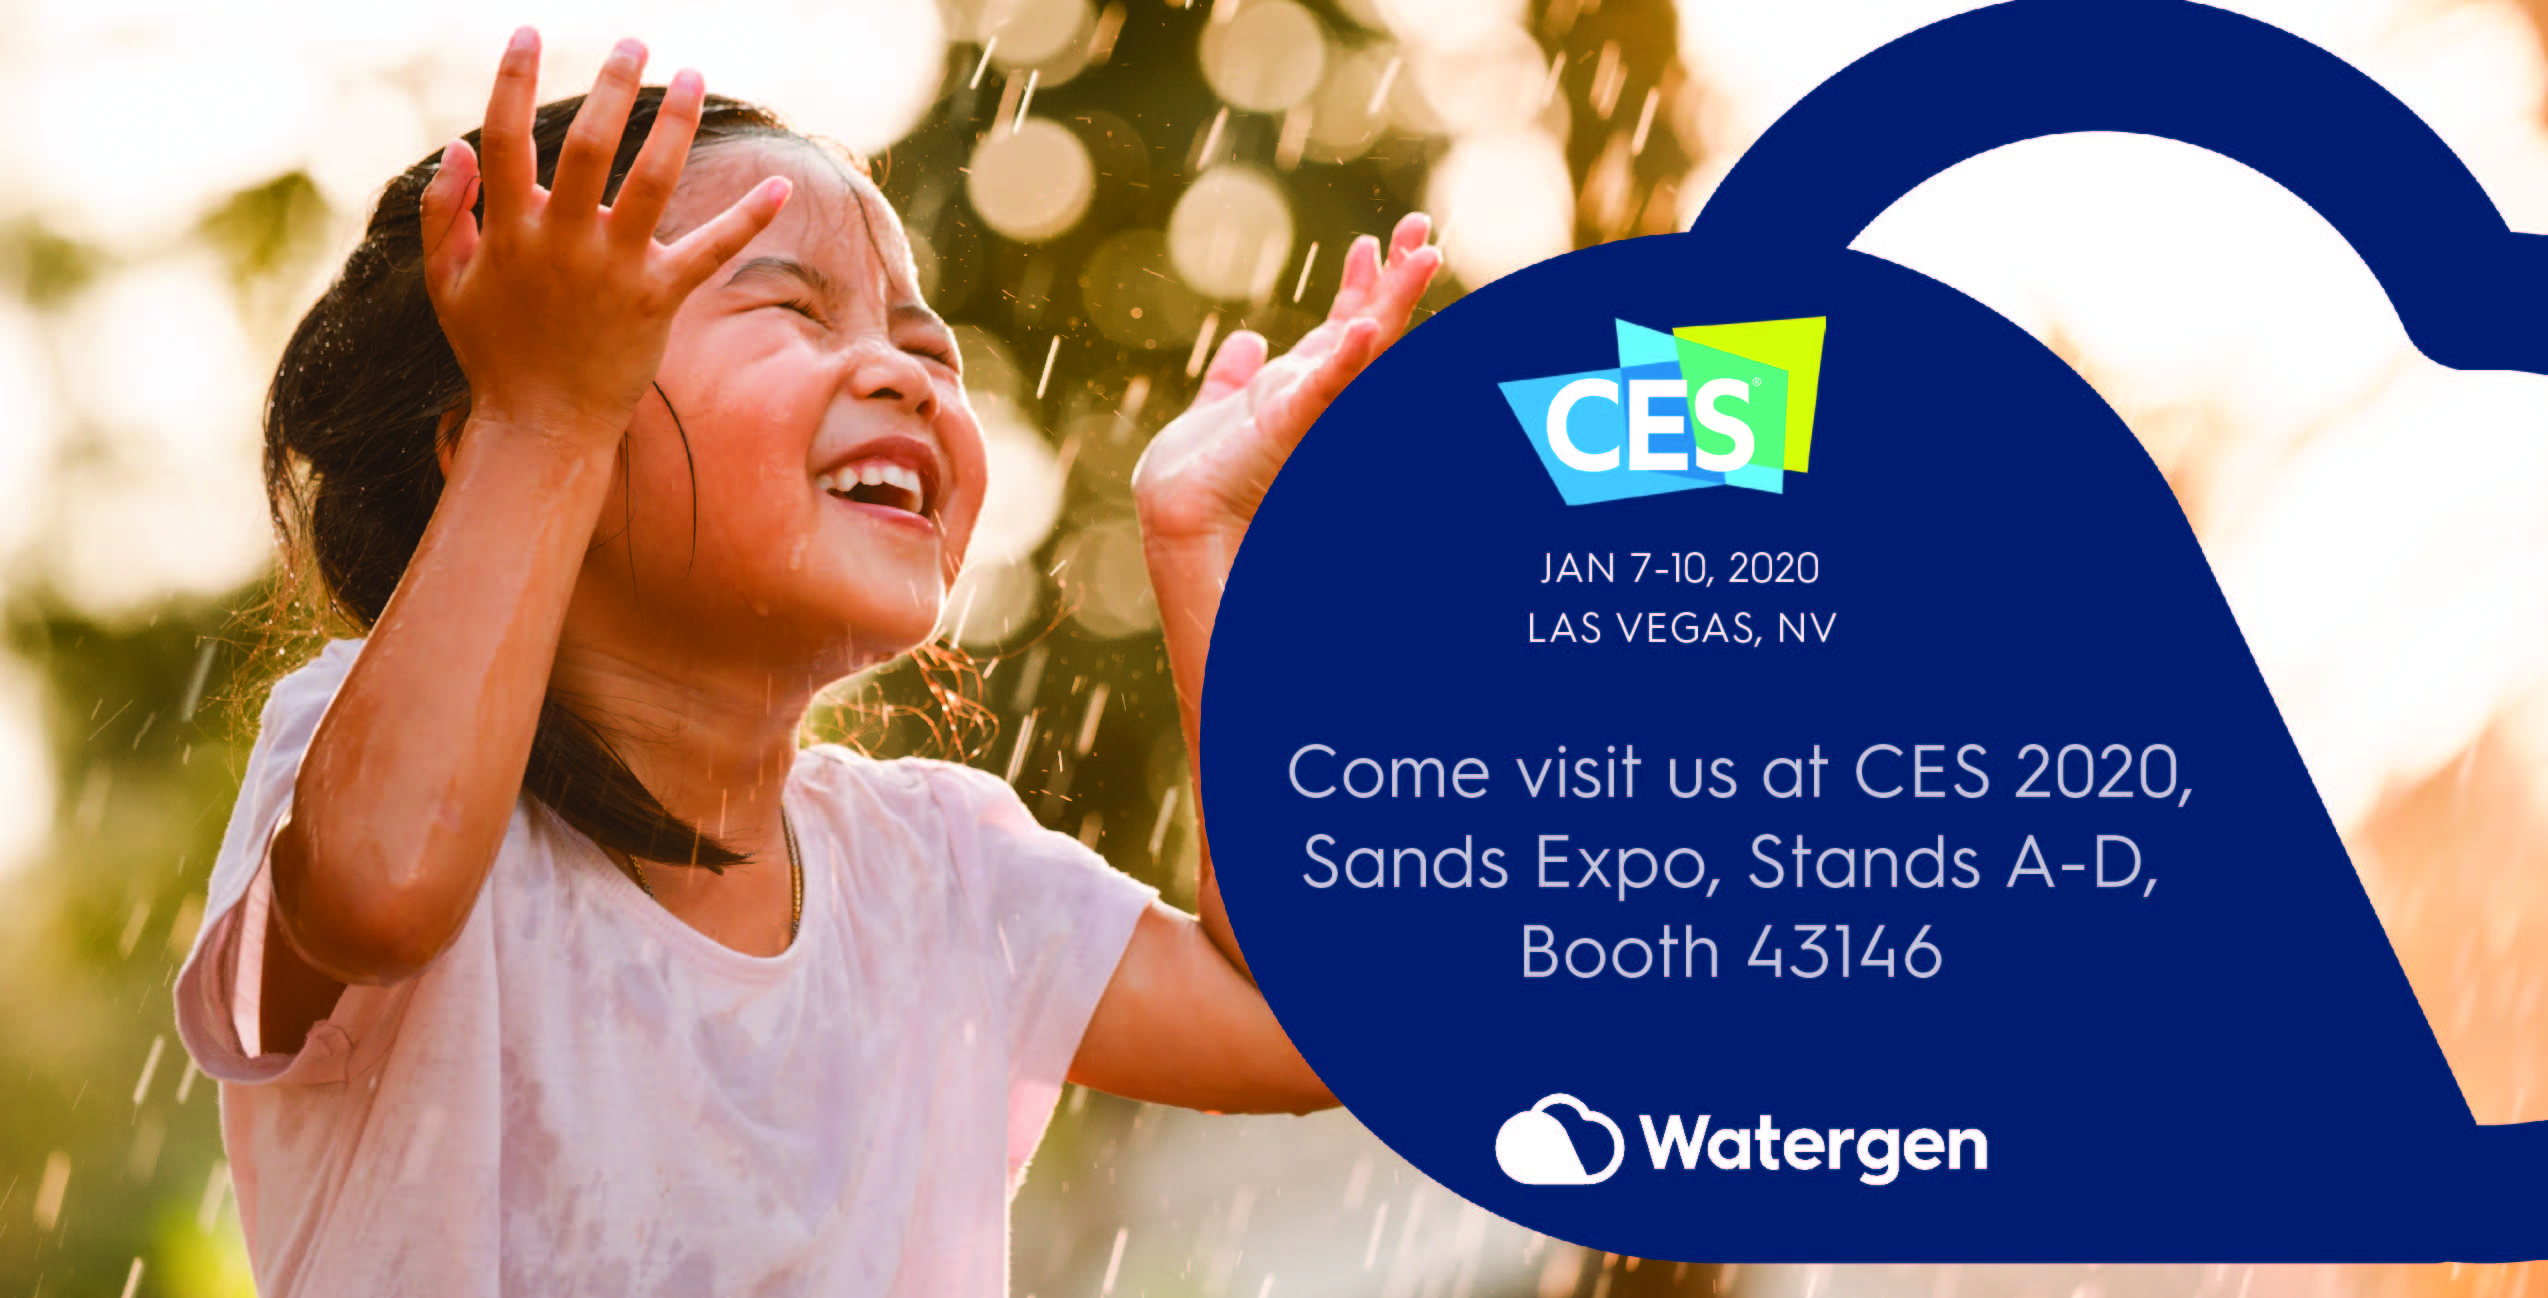 Watergen at CES 2020